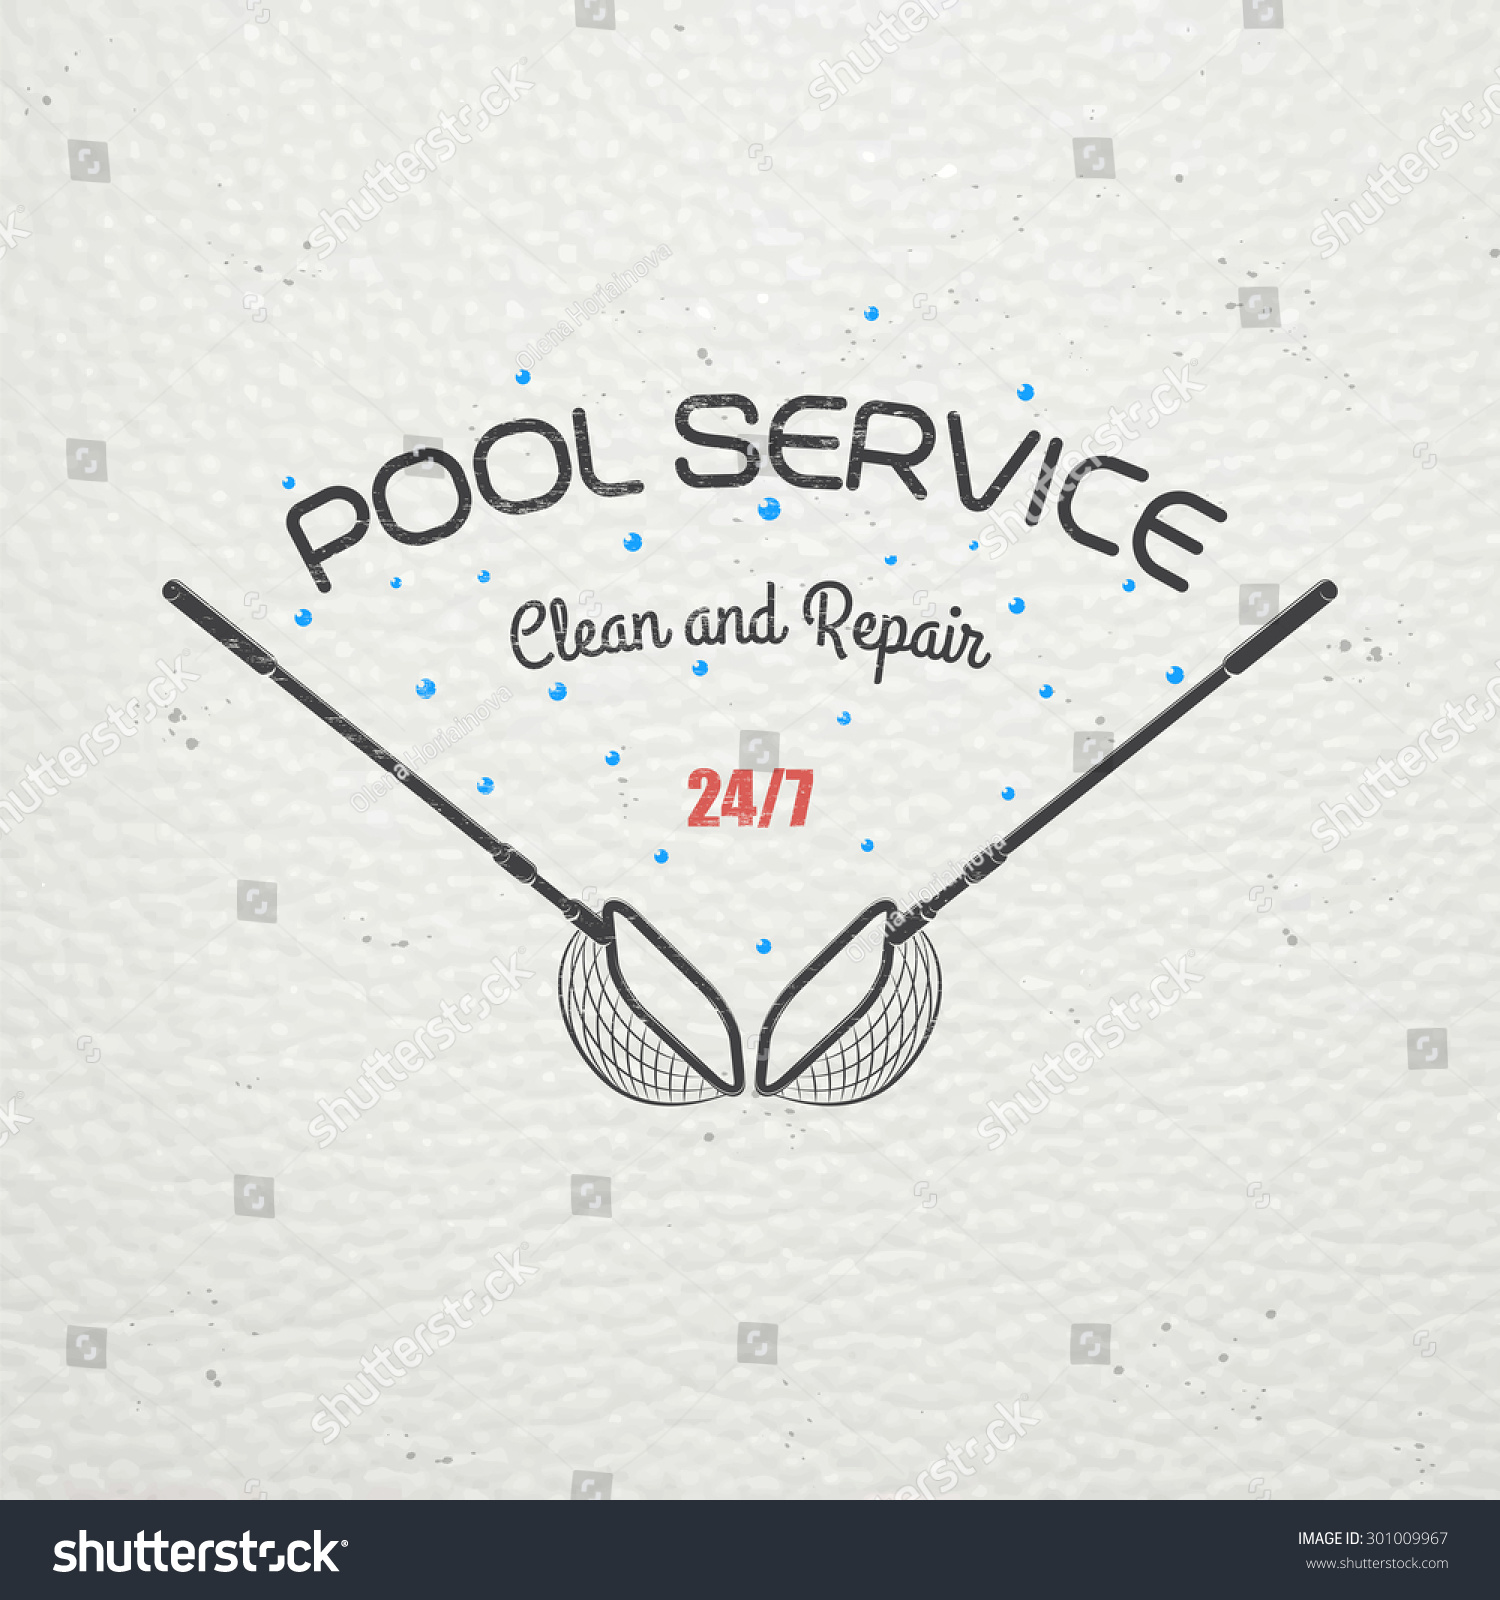 Swimming Pool Cleaning Clip Art : Pool service clip art cliparts